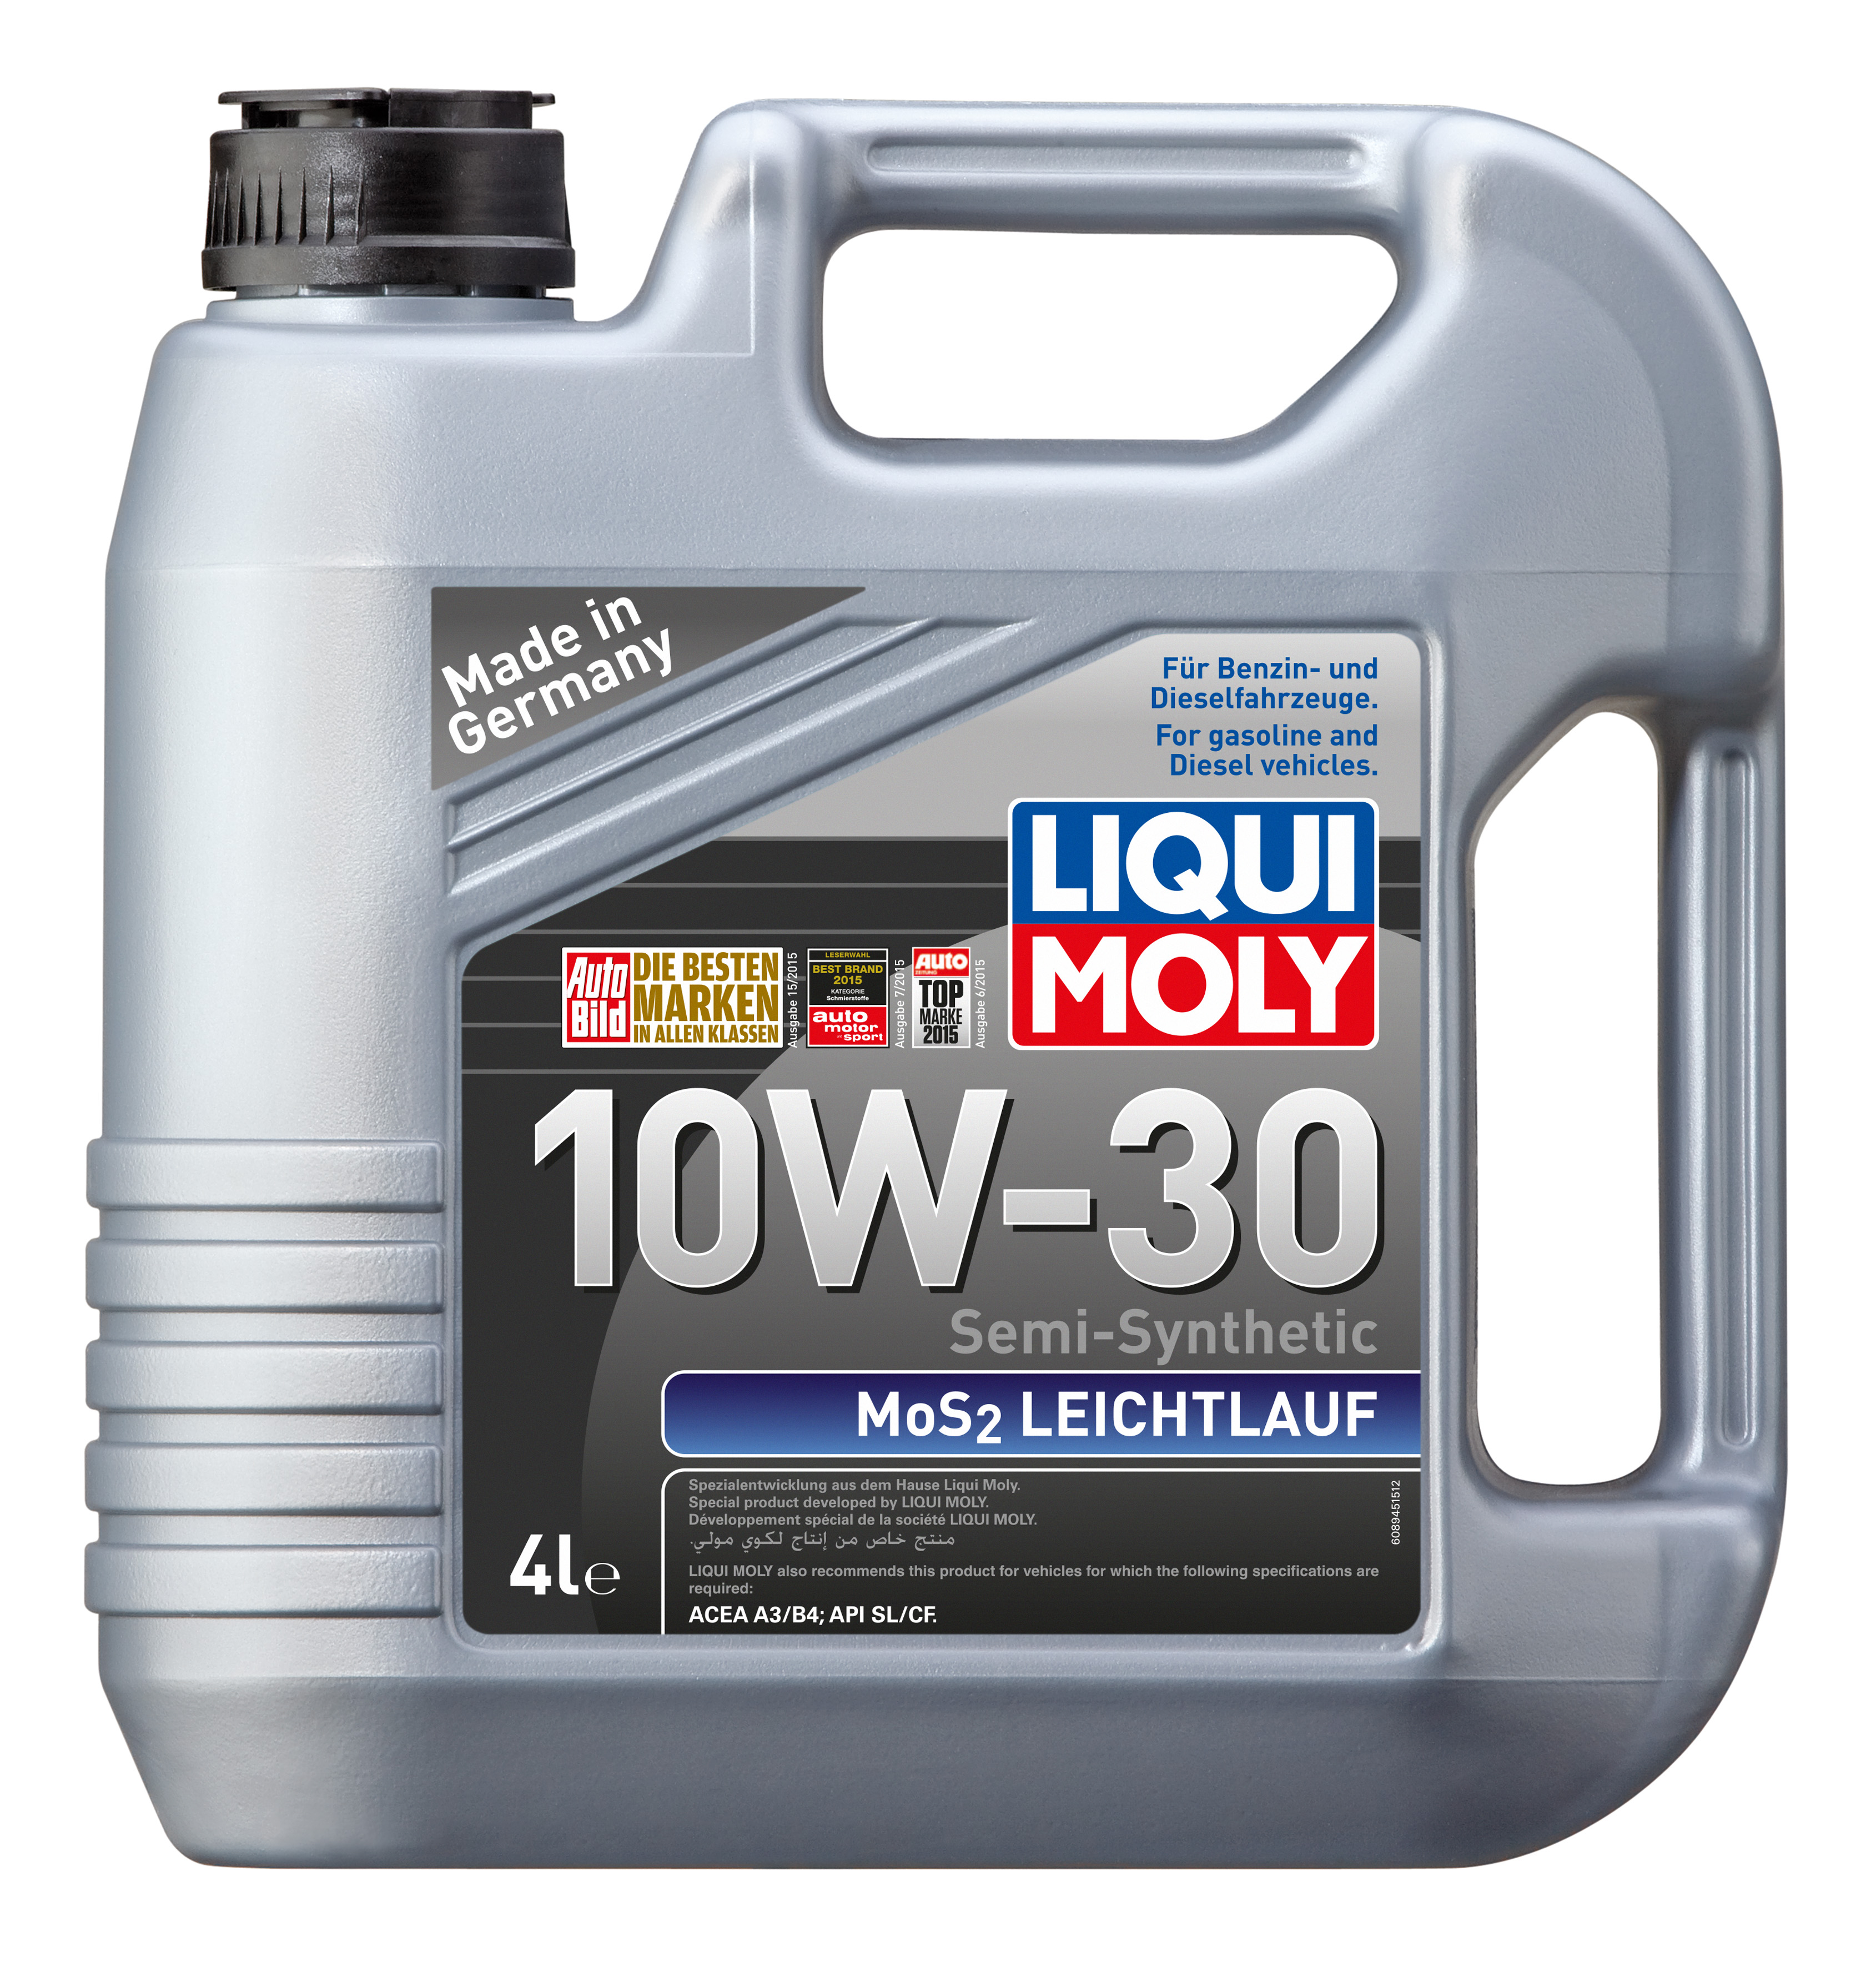 liqui moly mos2 leichtlauf 10w 30 4l. Black Bedroom Furniture Sets. Home Design Ideas